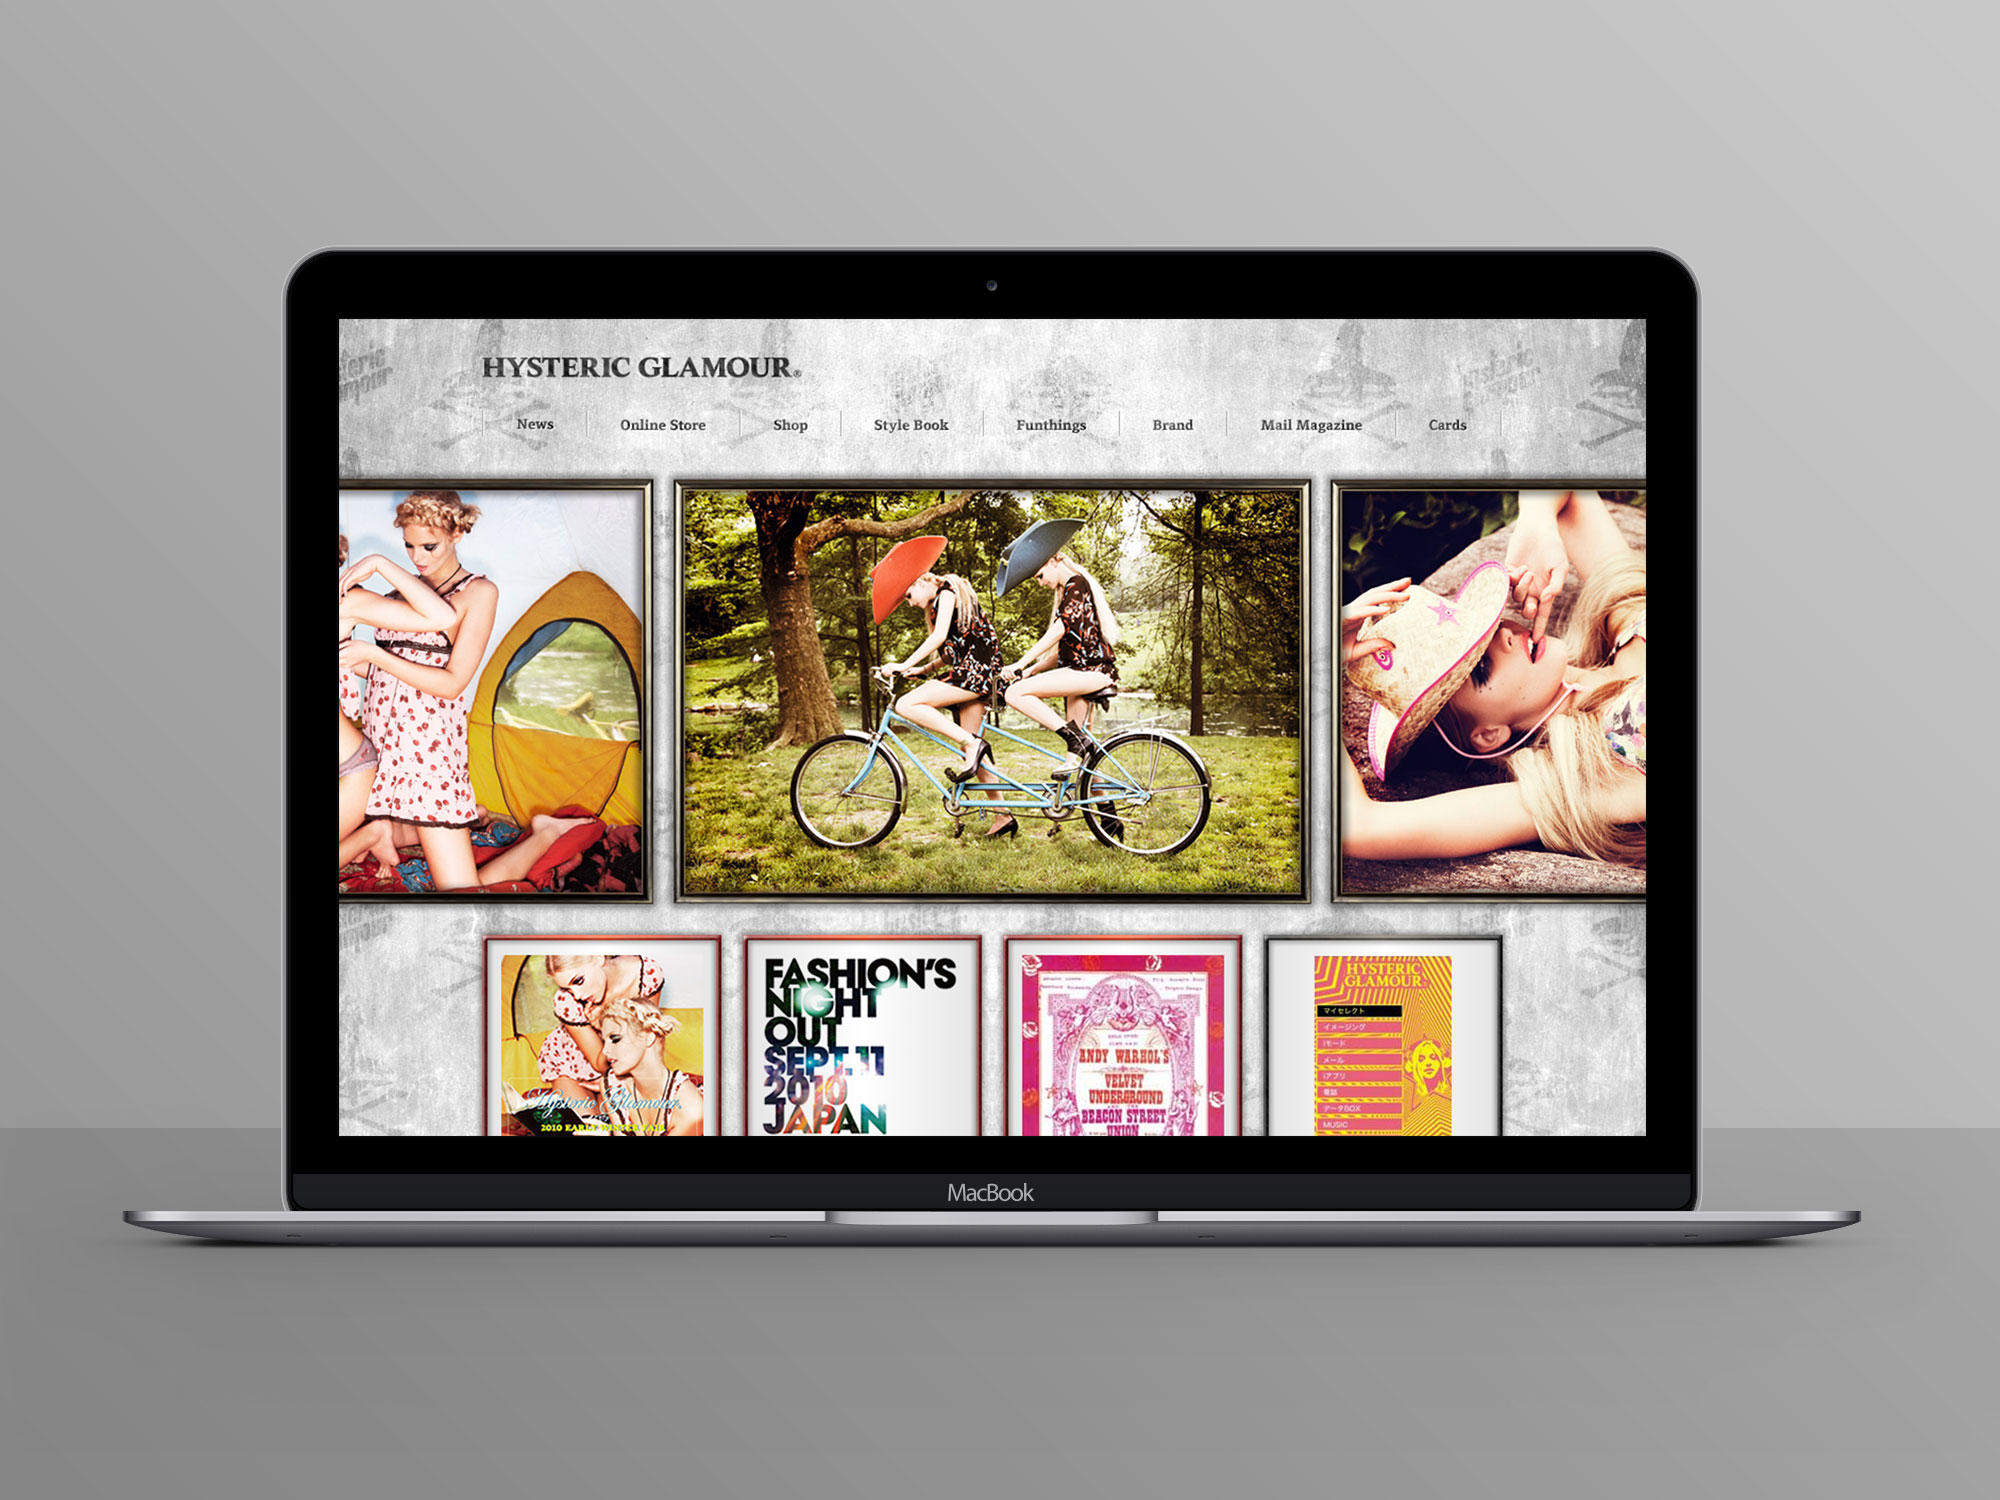 HYSTERIC GLAMOUR Official Site Design